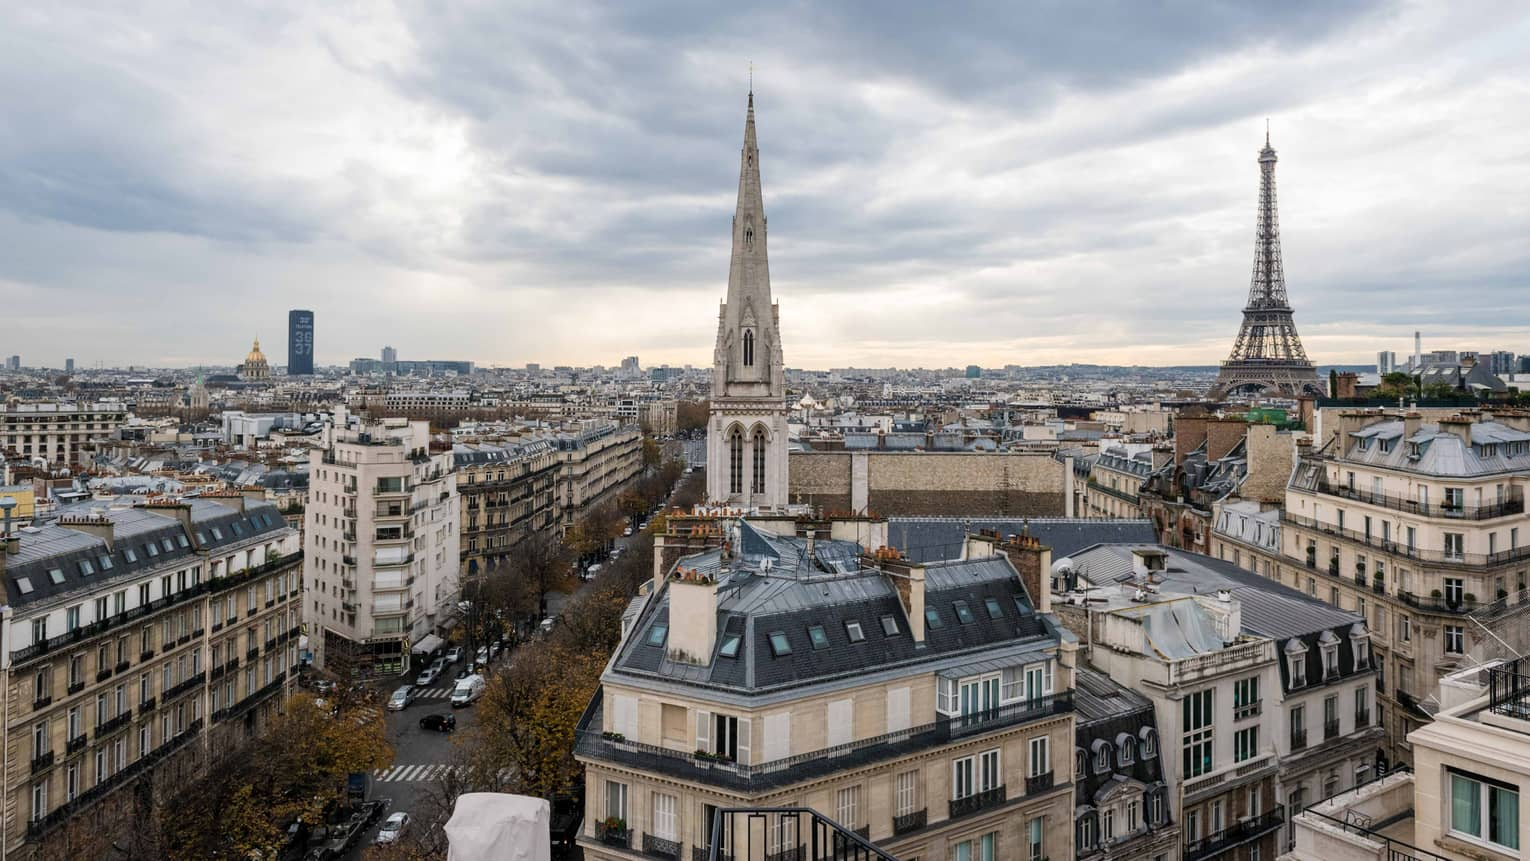 View over Paris's Golden Triangle rooftops, cathedral towers, Eiffel Tower